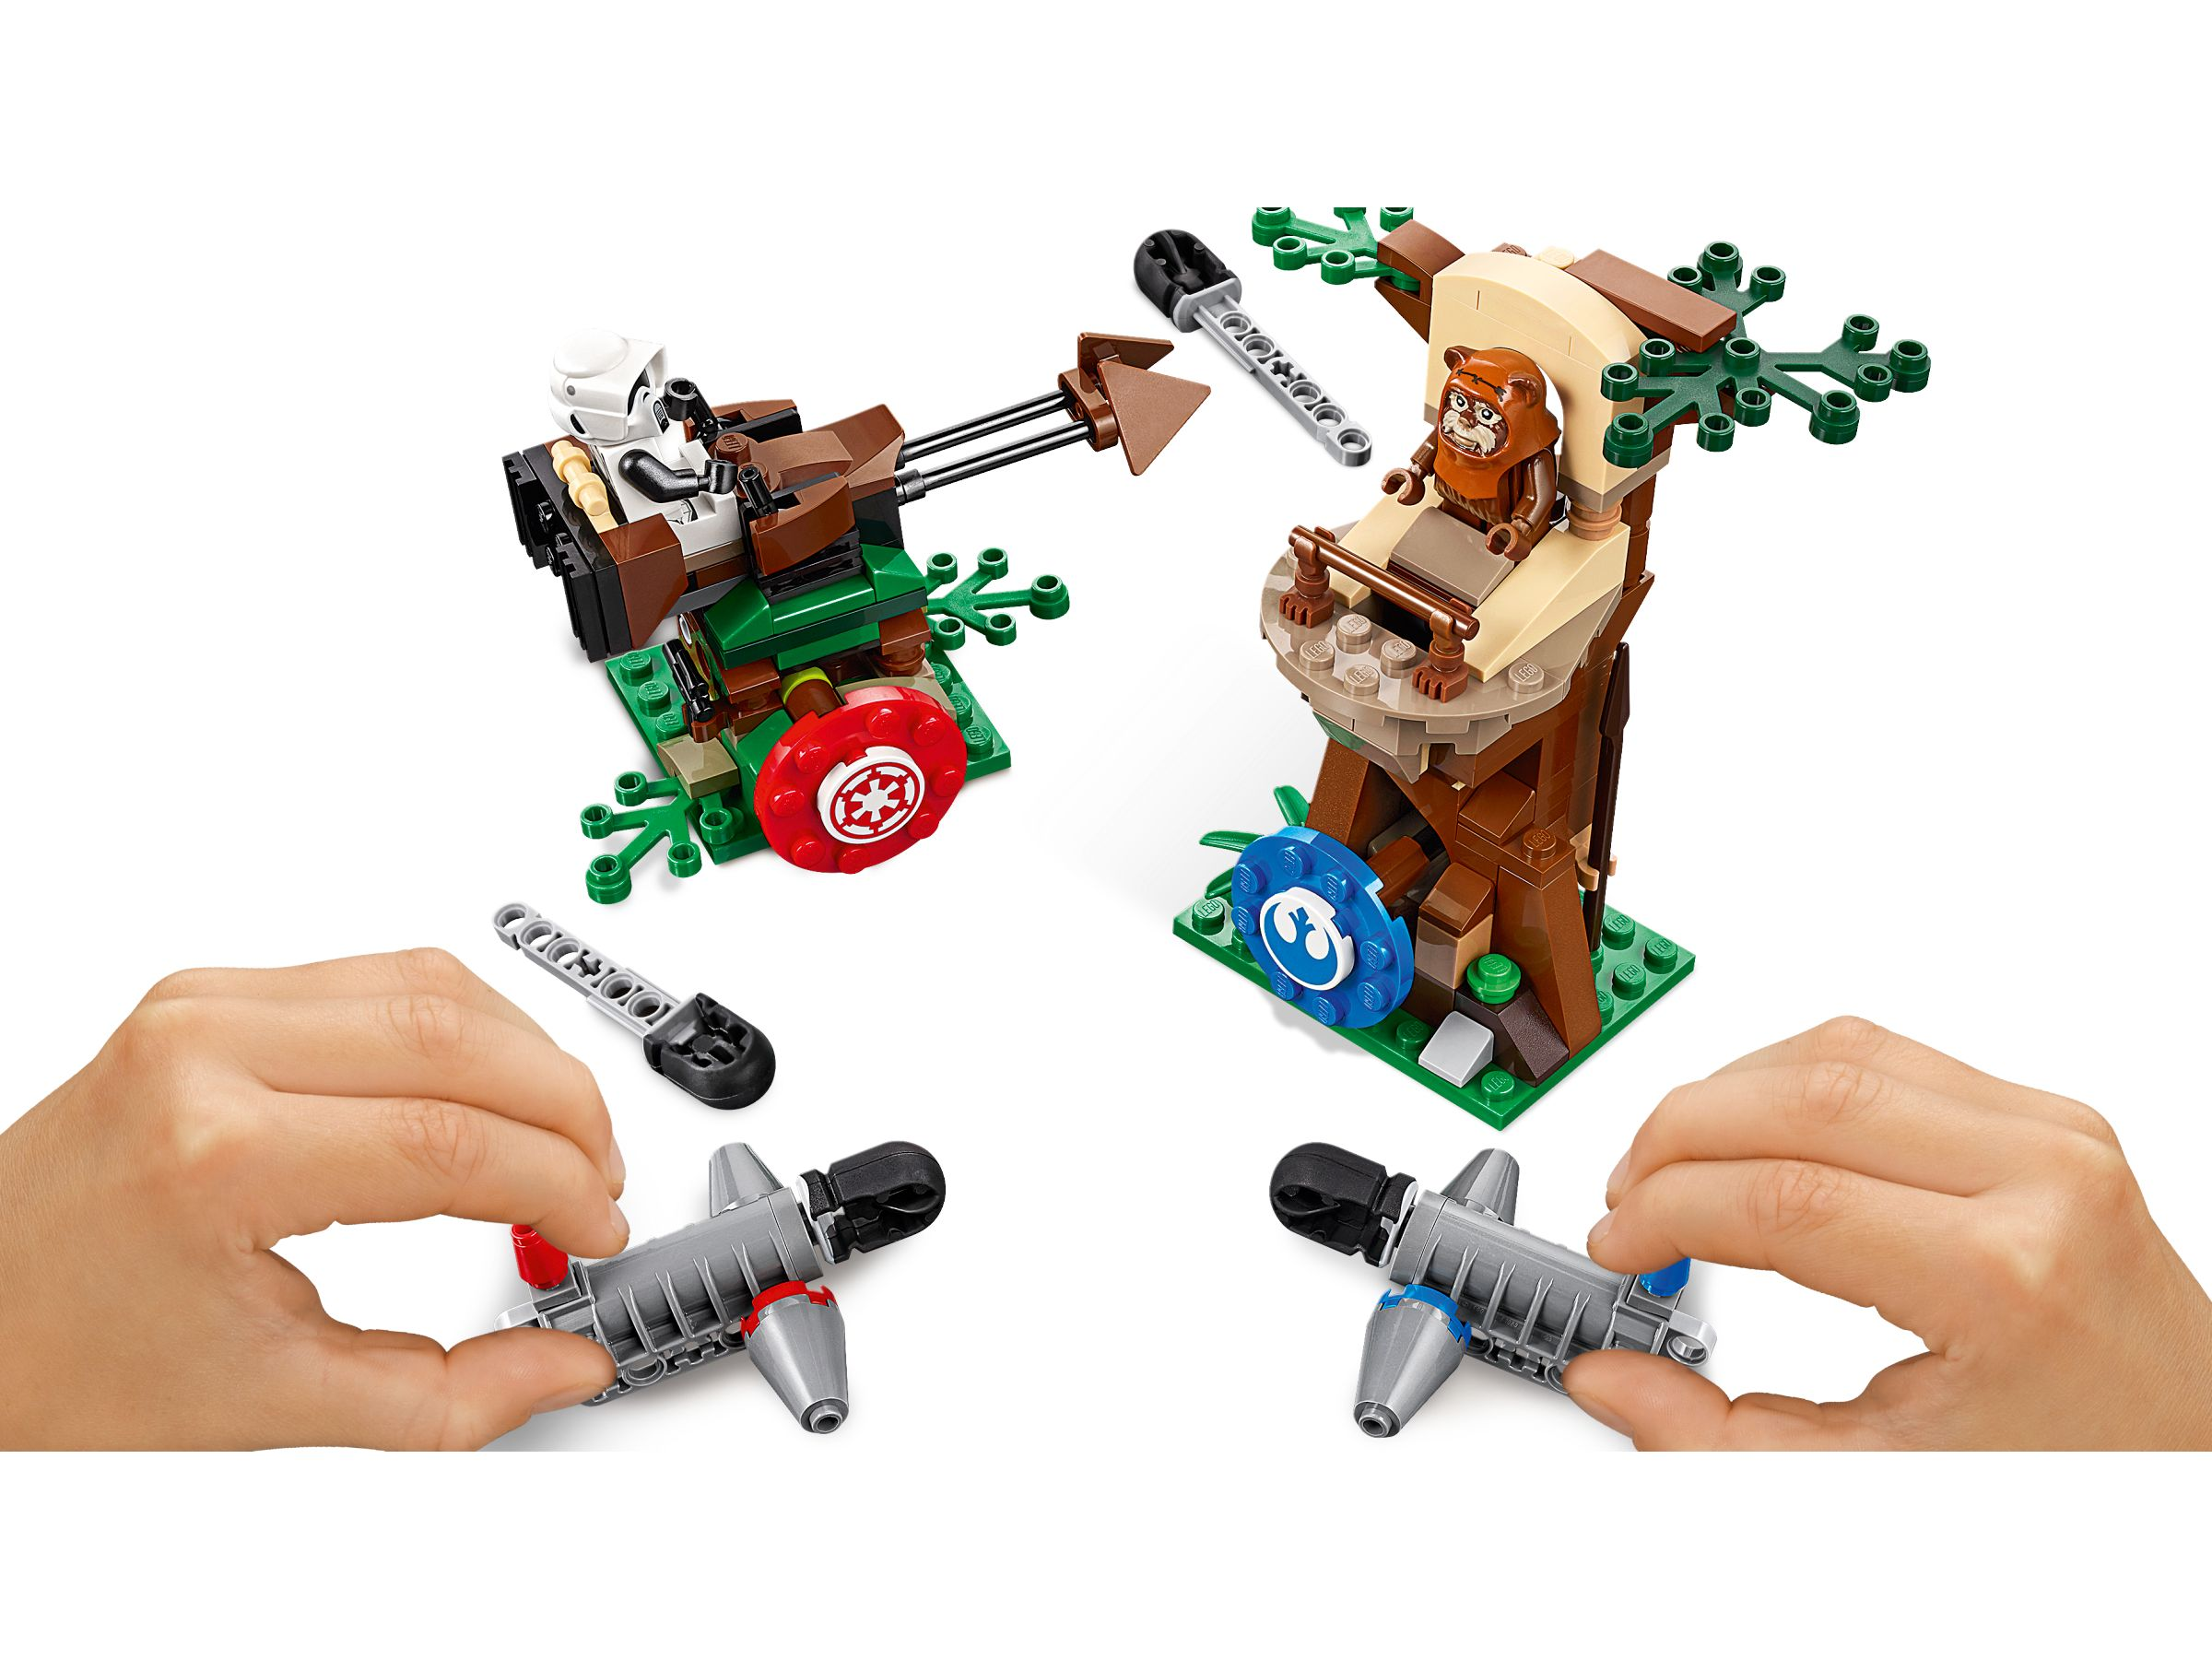 LEGO Star Wars 75238 Action Battle Endor™ Attacke LEGO_75238_alt3.jpg